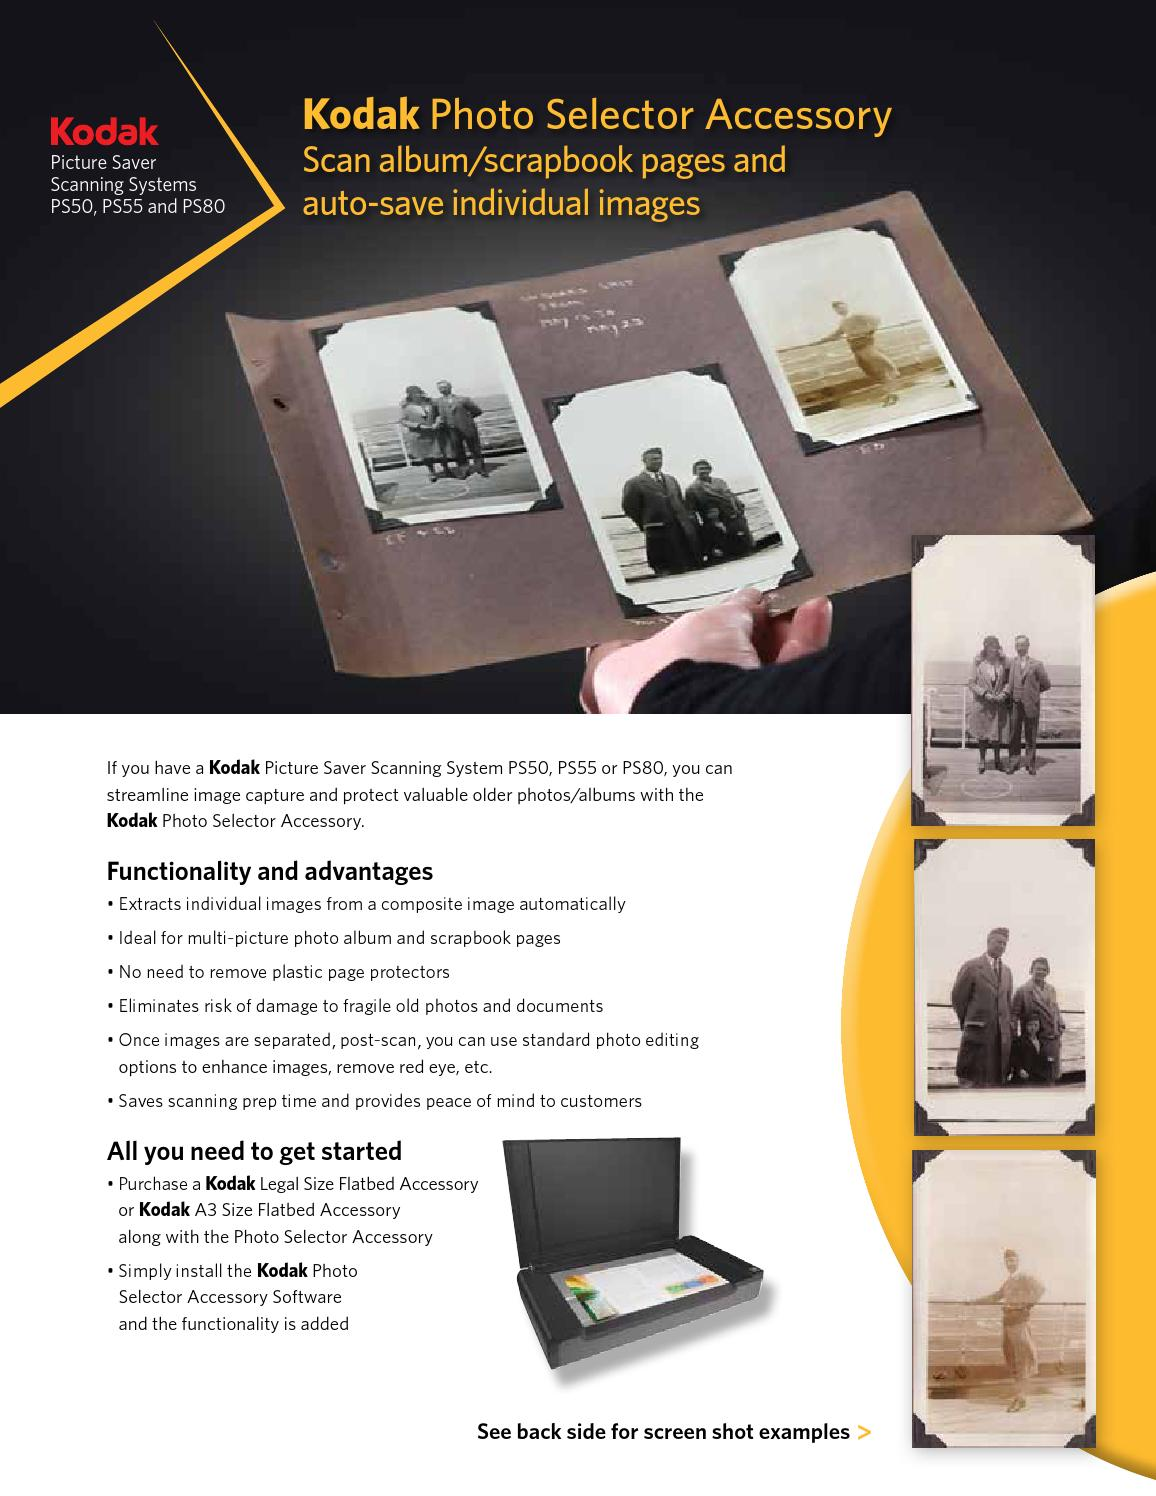 Kodak Photo Selector Accessory by E-Z Photo Scan, powered by